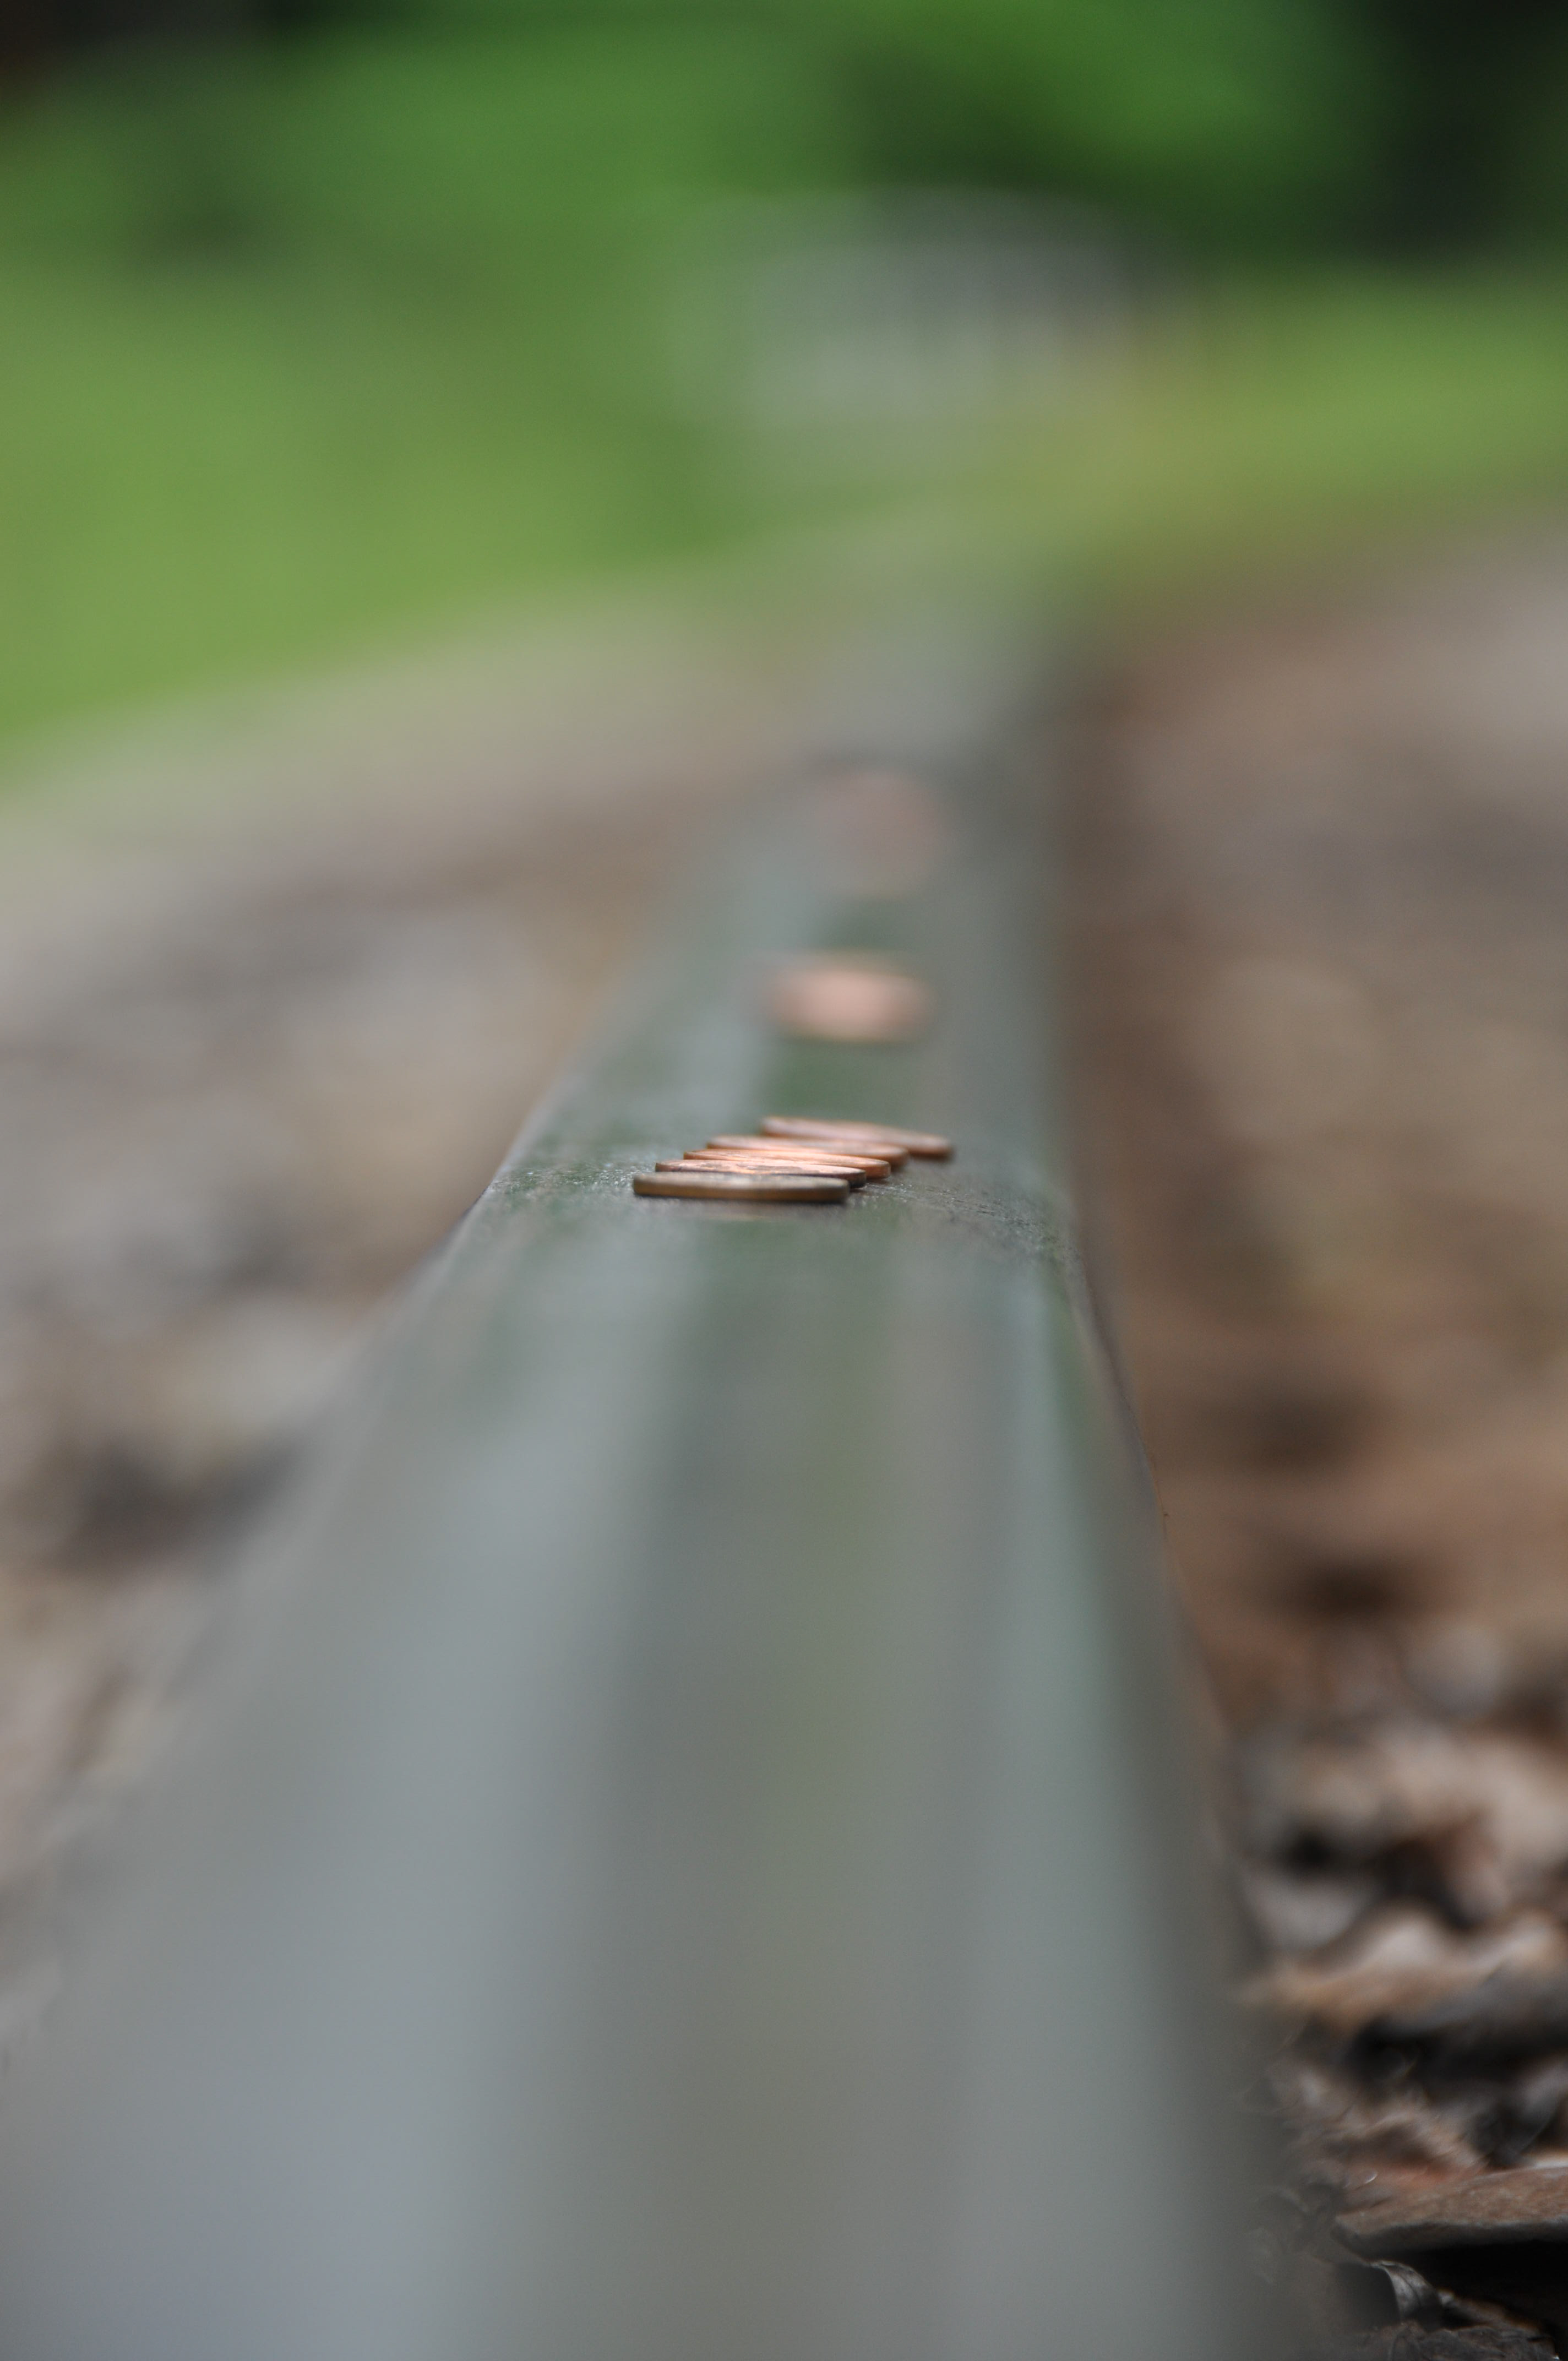 Pennies on a Railroad Track